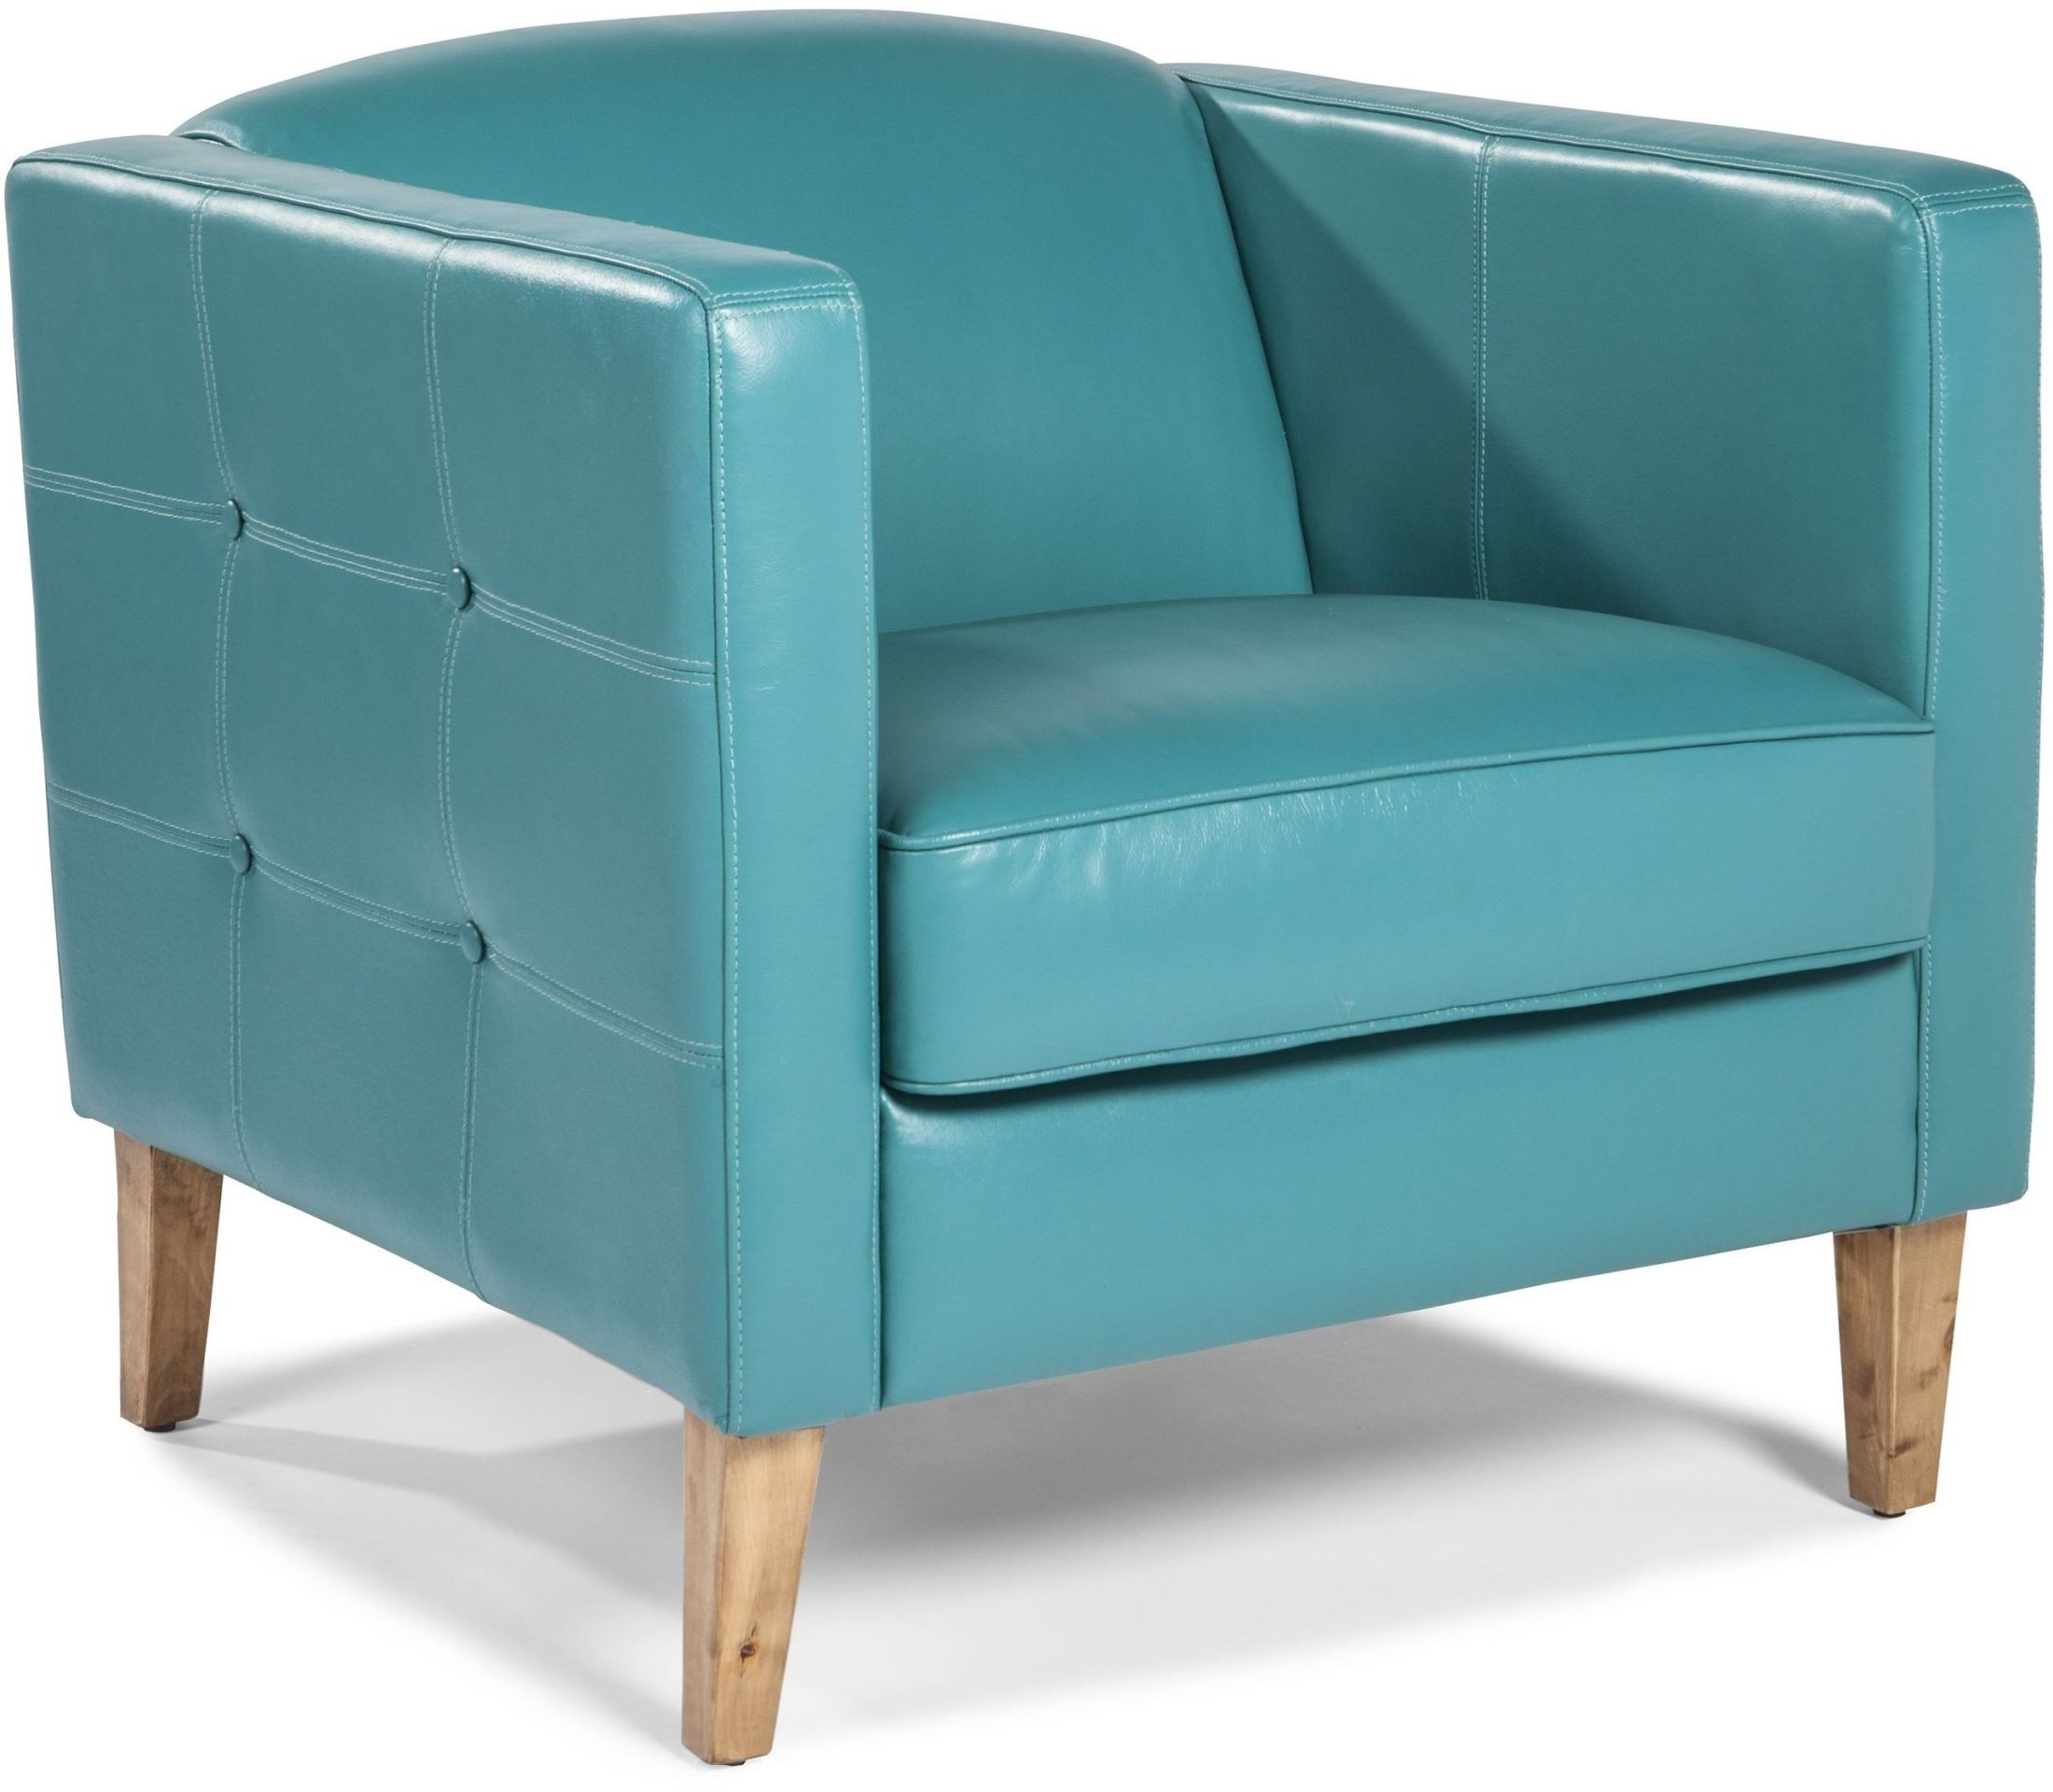 Teal Leather Chair Miami Teal Leather Chair From Lazzaro Coleman Furniture